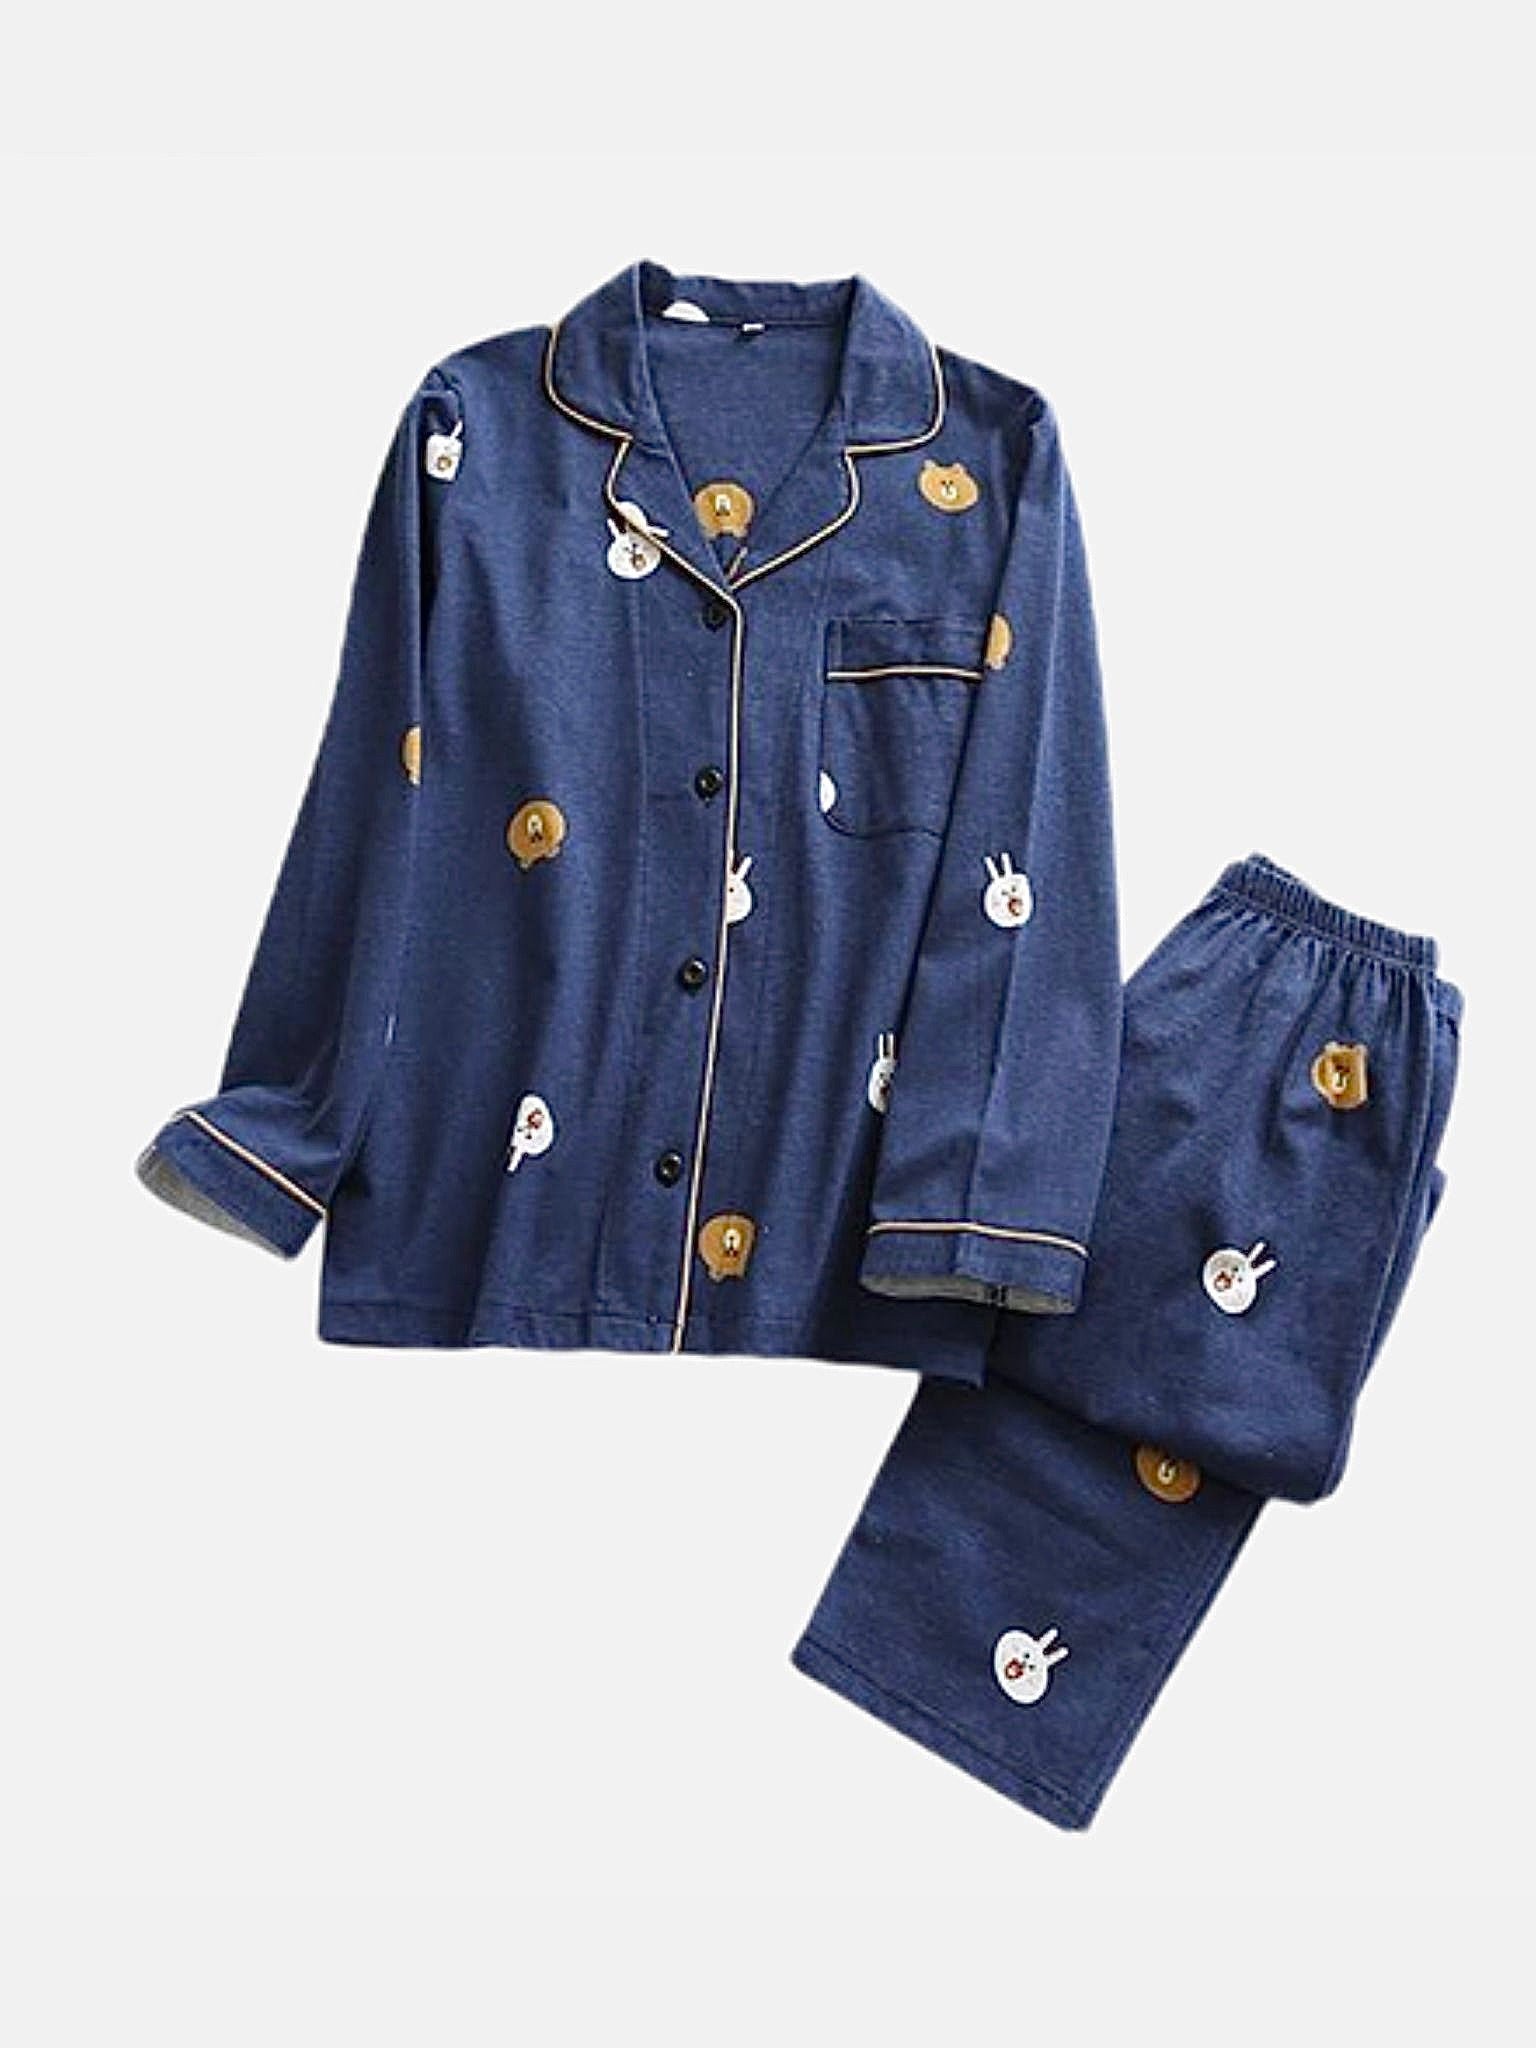 Pajama Set 2-Piece        Japanese cyan blue cotton long-sleeved two piece rabbit and bear pajamas suit Trend